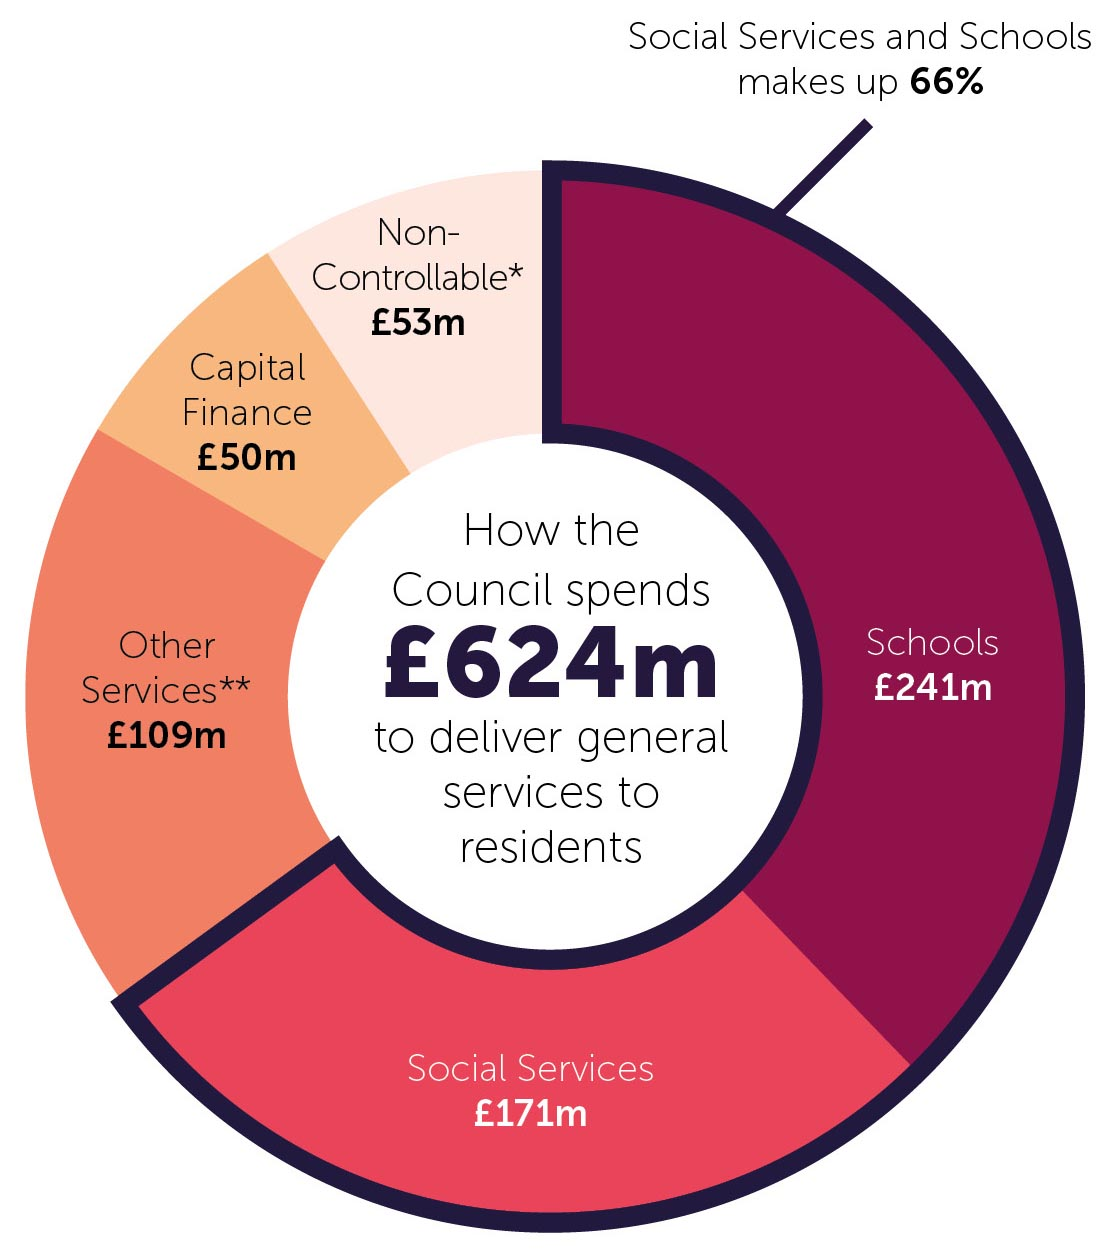 Chart showing how the council spends £624m to deliver services